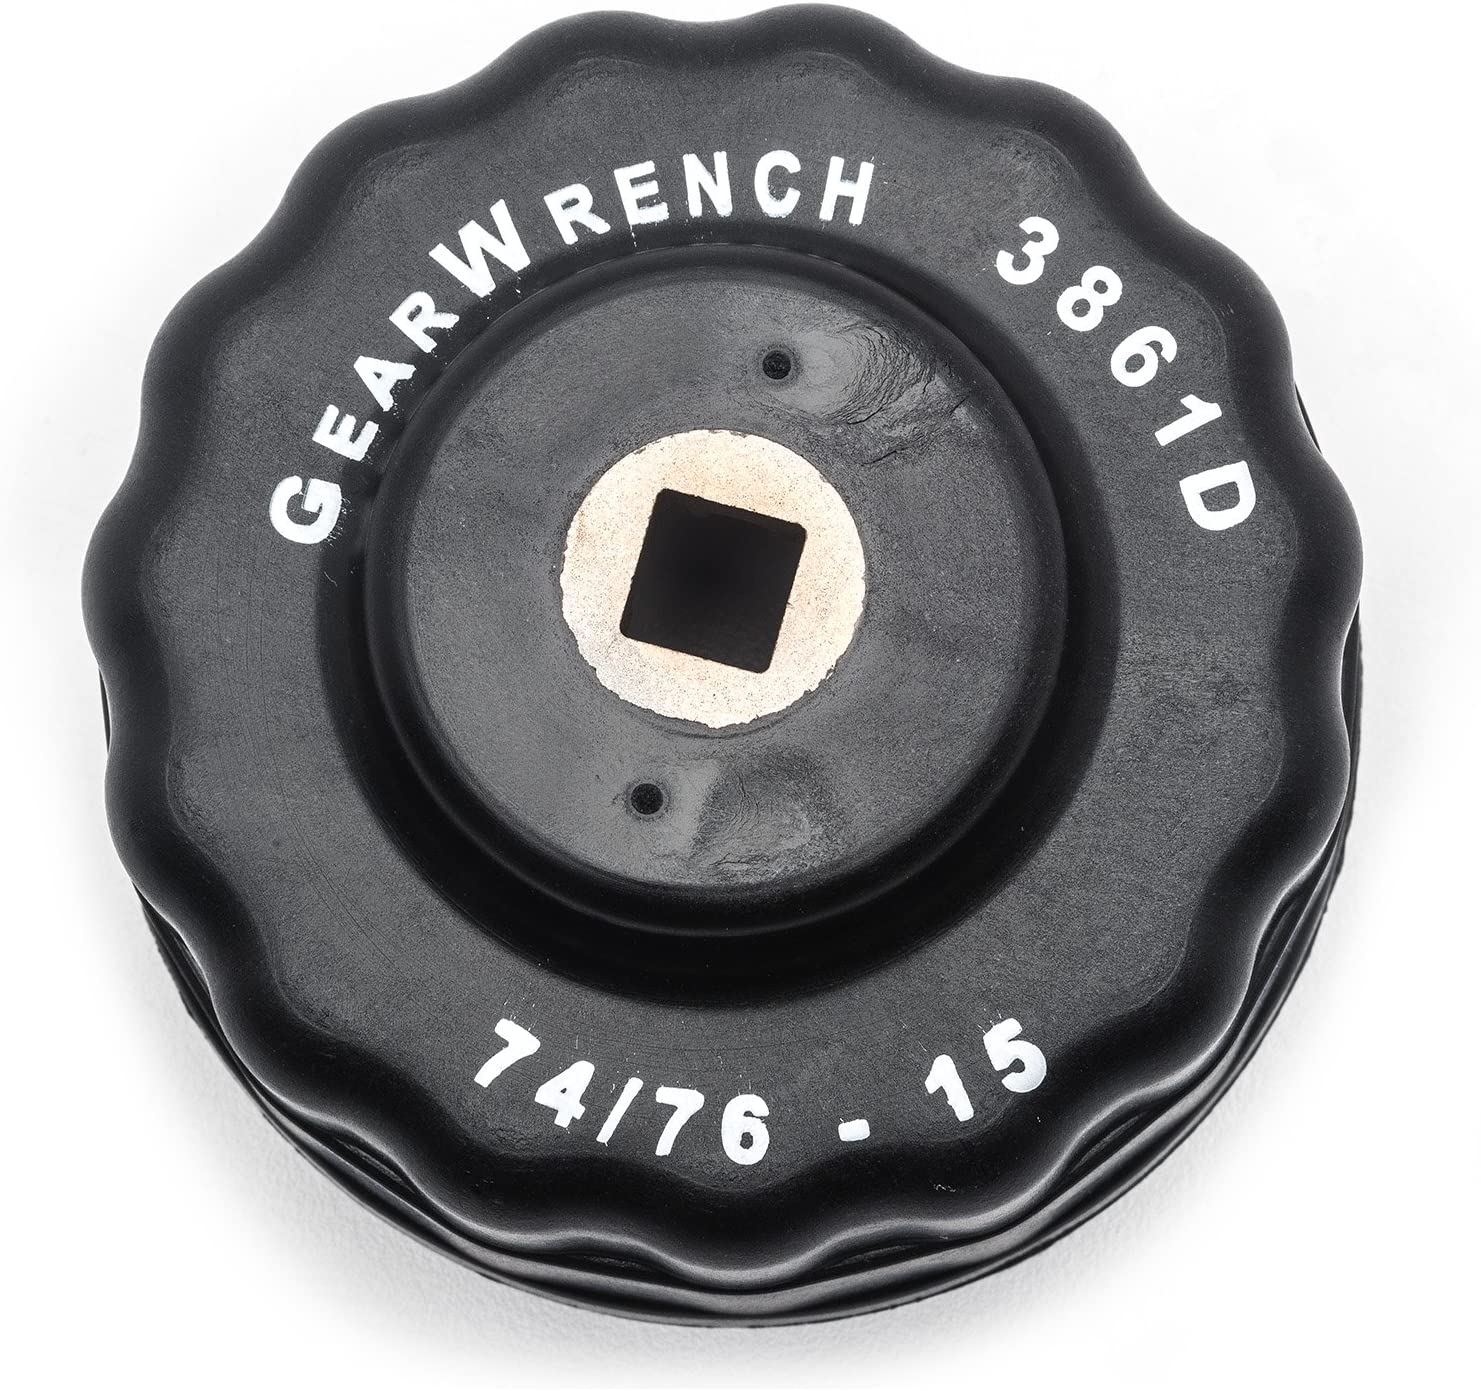 GEARWRENCH 3861D 3//8 Drive 15 Flute Oil Filter End Cap Metric Wrench 74 /& 76mm, Black Apex Tool Group